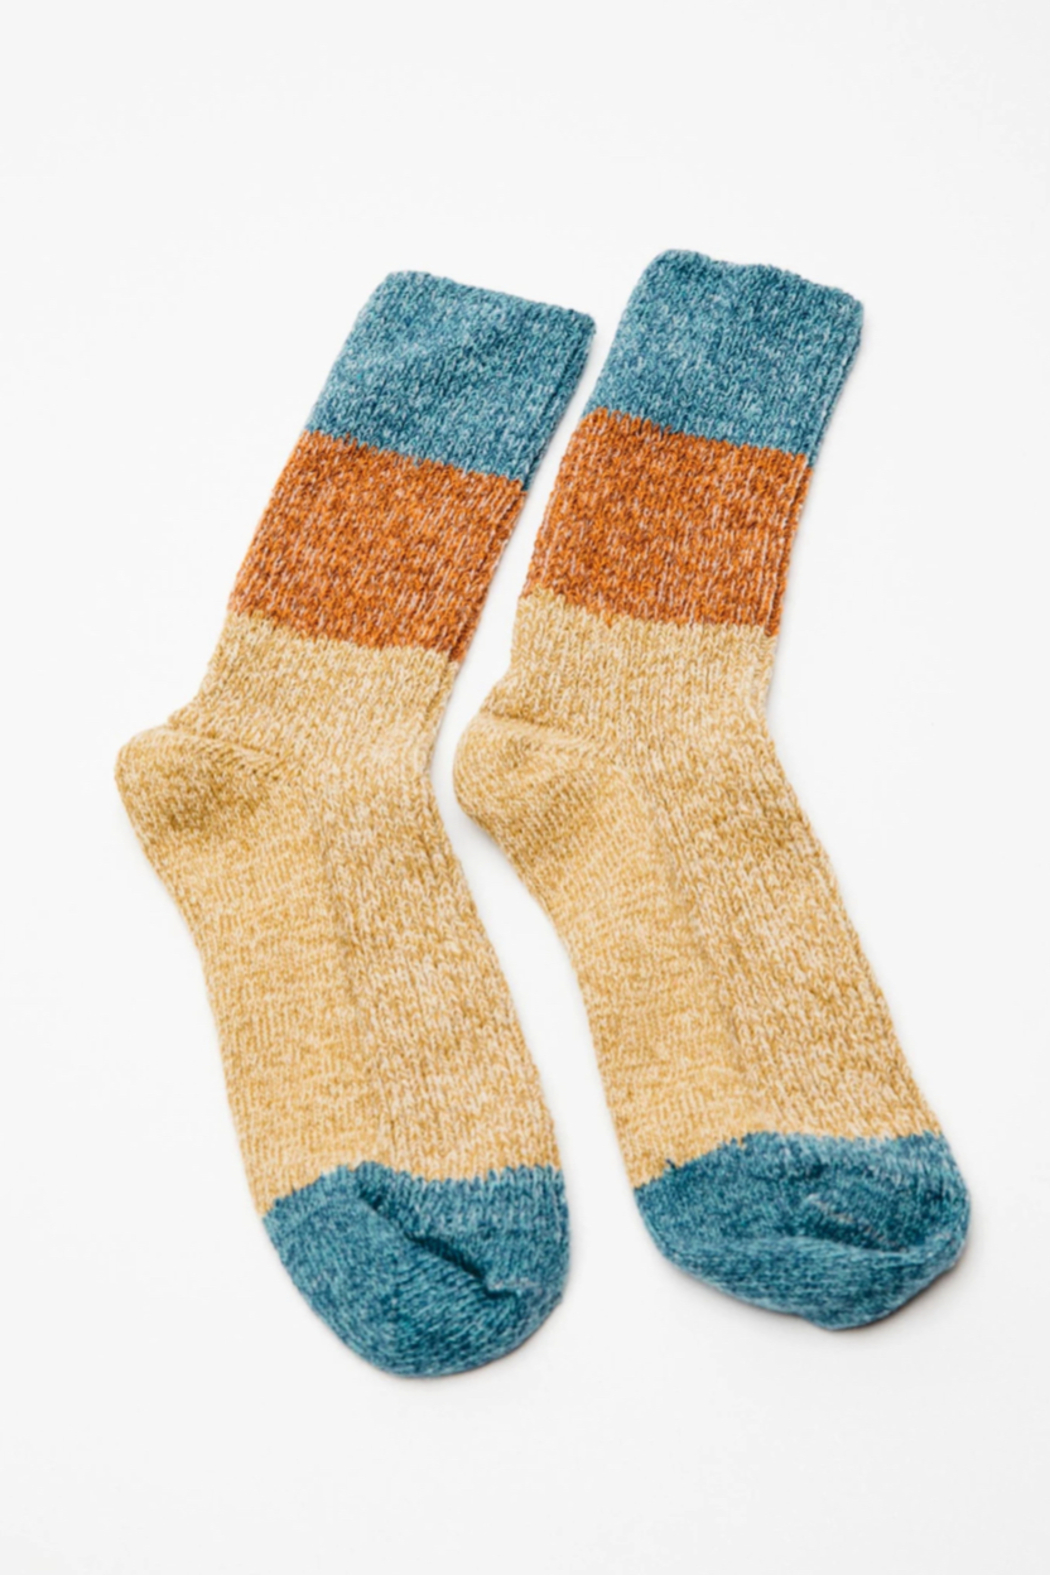 Mollusk Twist Crew Sock in Rust and Blue - Side Cropped Image